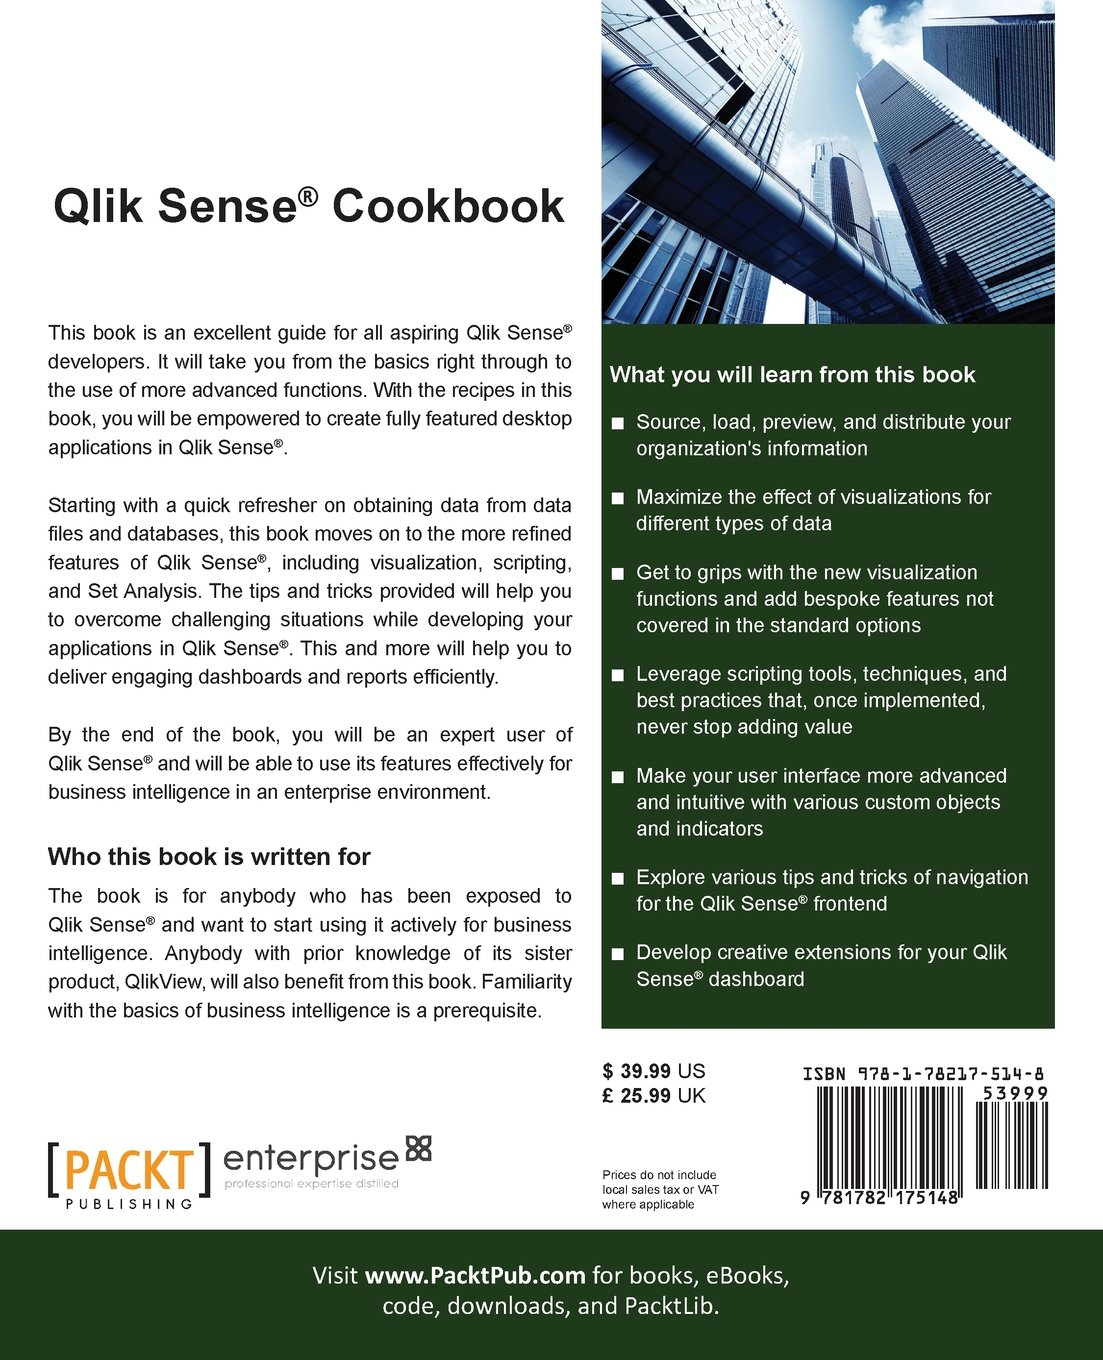 Amazon com: Qlik® Sense Cookbook (9781782175148): Philip